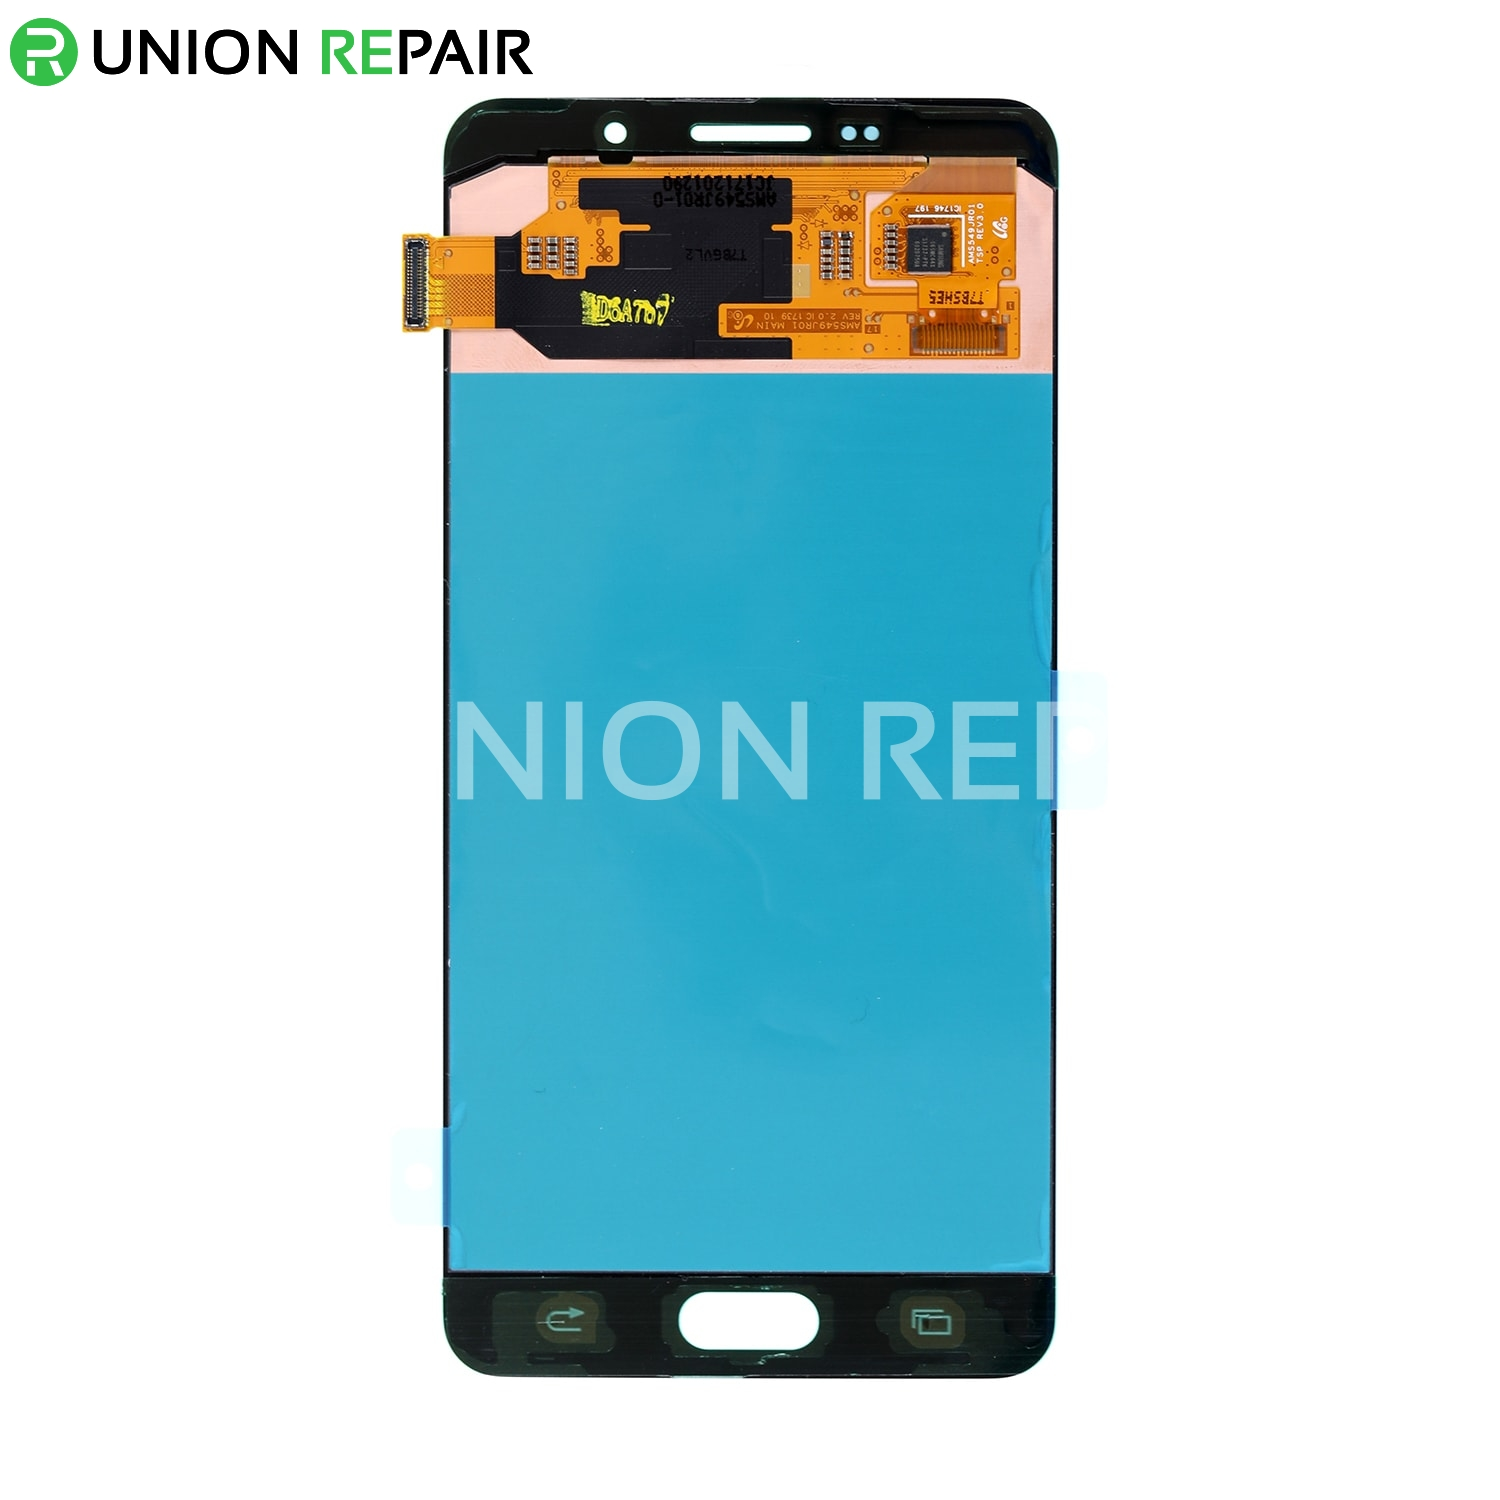 Replacement For Samsung Galaxy A7 2016 Sm A710 Lcd Screen With Vikento Anti Gores Premium Tempered